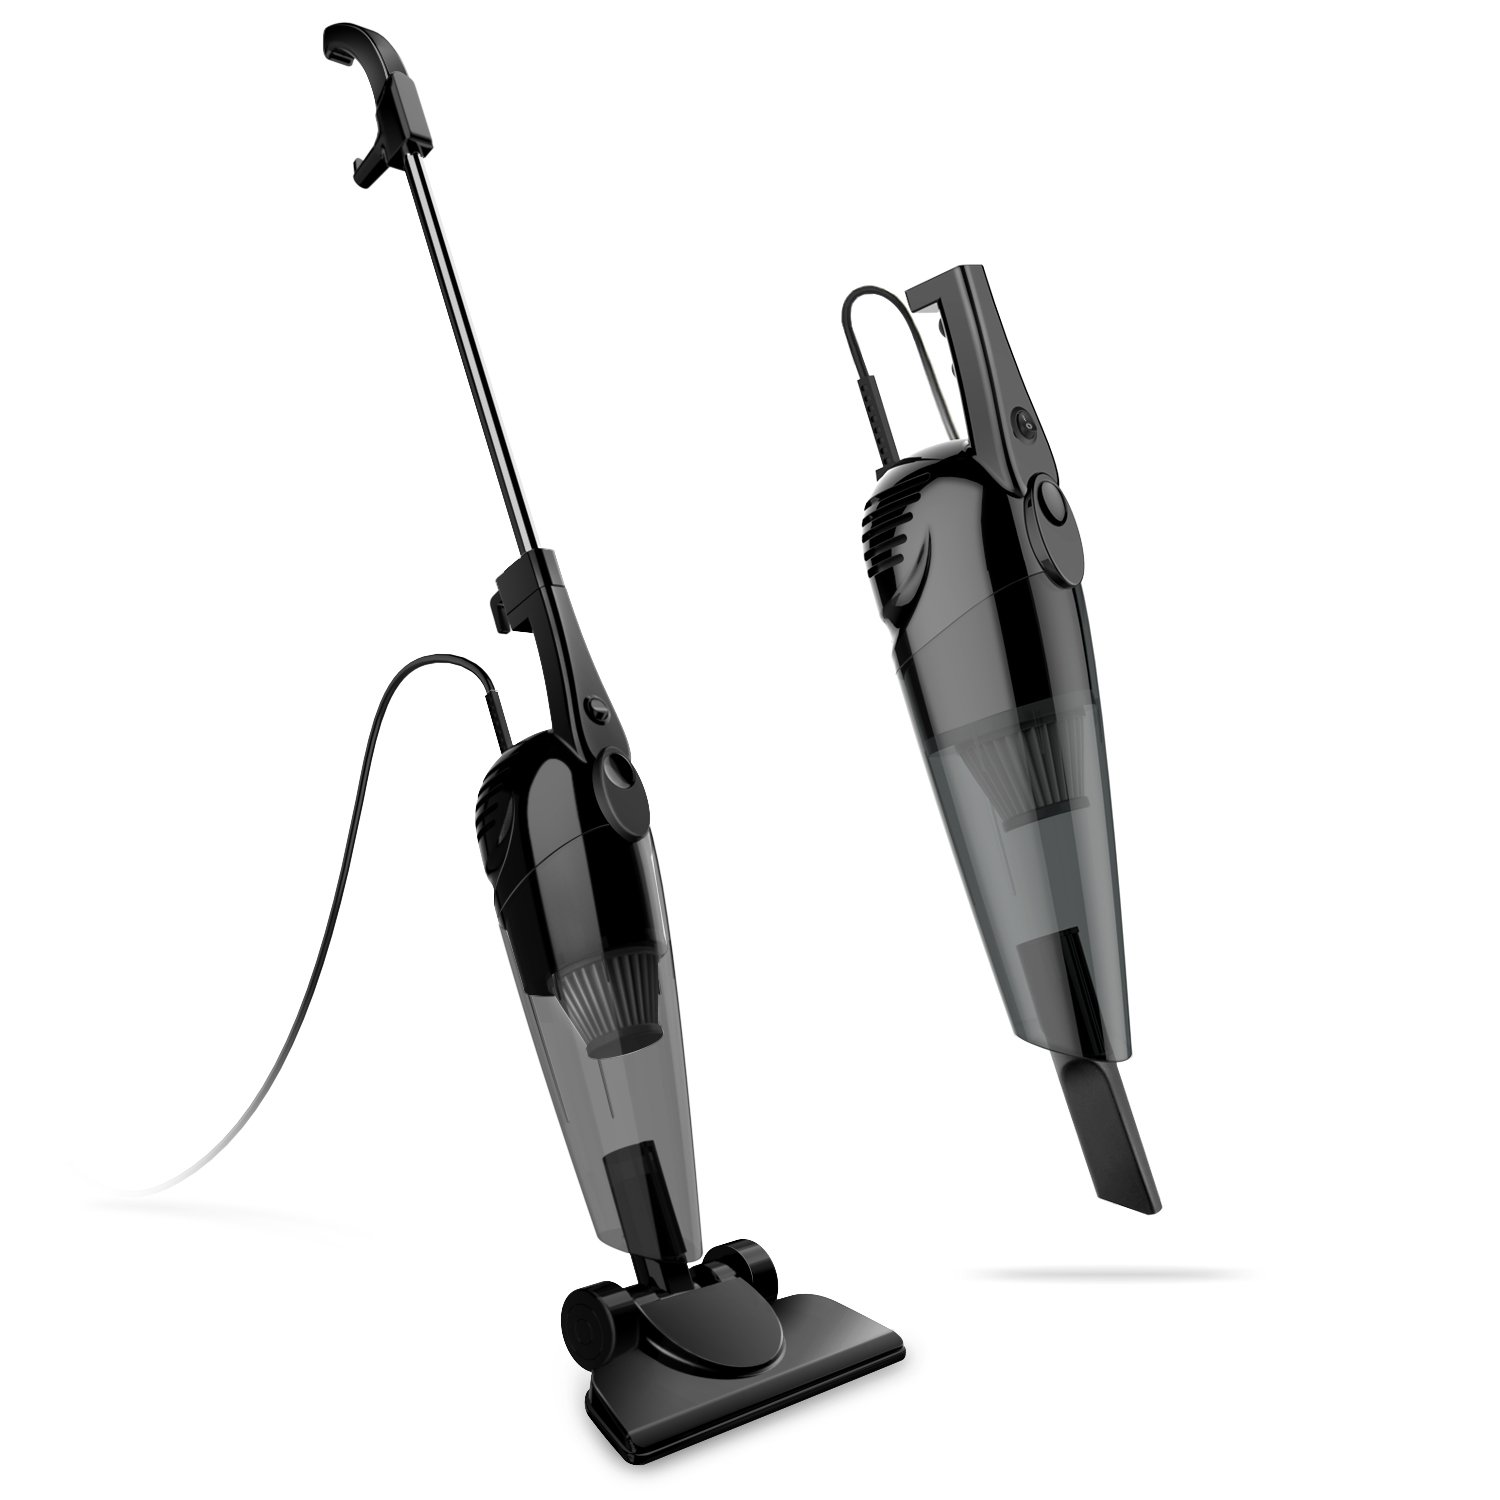 2 in 1 Stick and Handheld Vacuum 600W Corded Upright Lightweight Stick Vacuum and Handheld Vacuum Cleaner with HEPA Filtration Crevice Tool and Brush Accessories